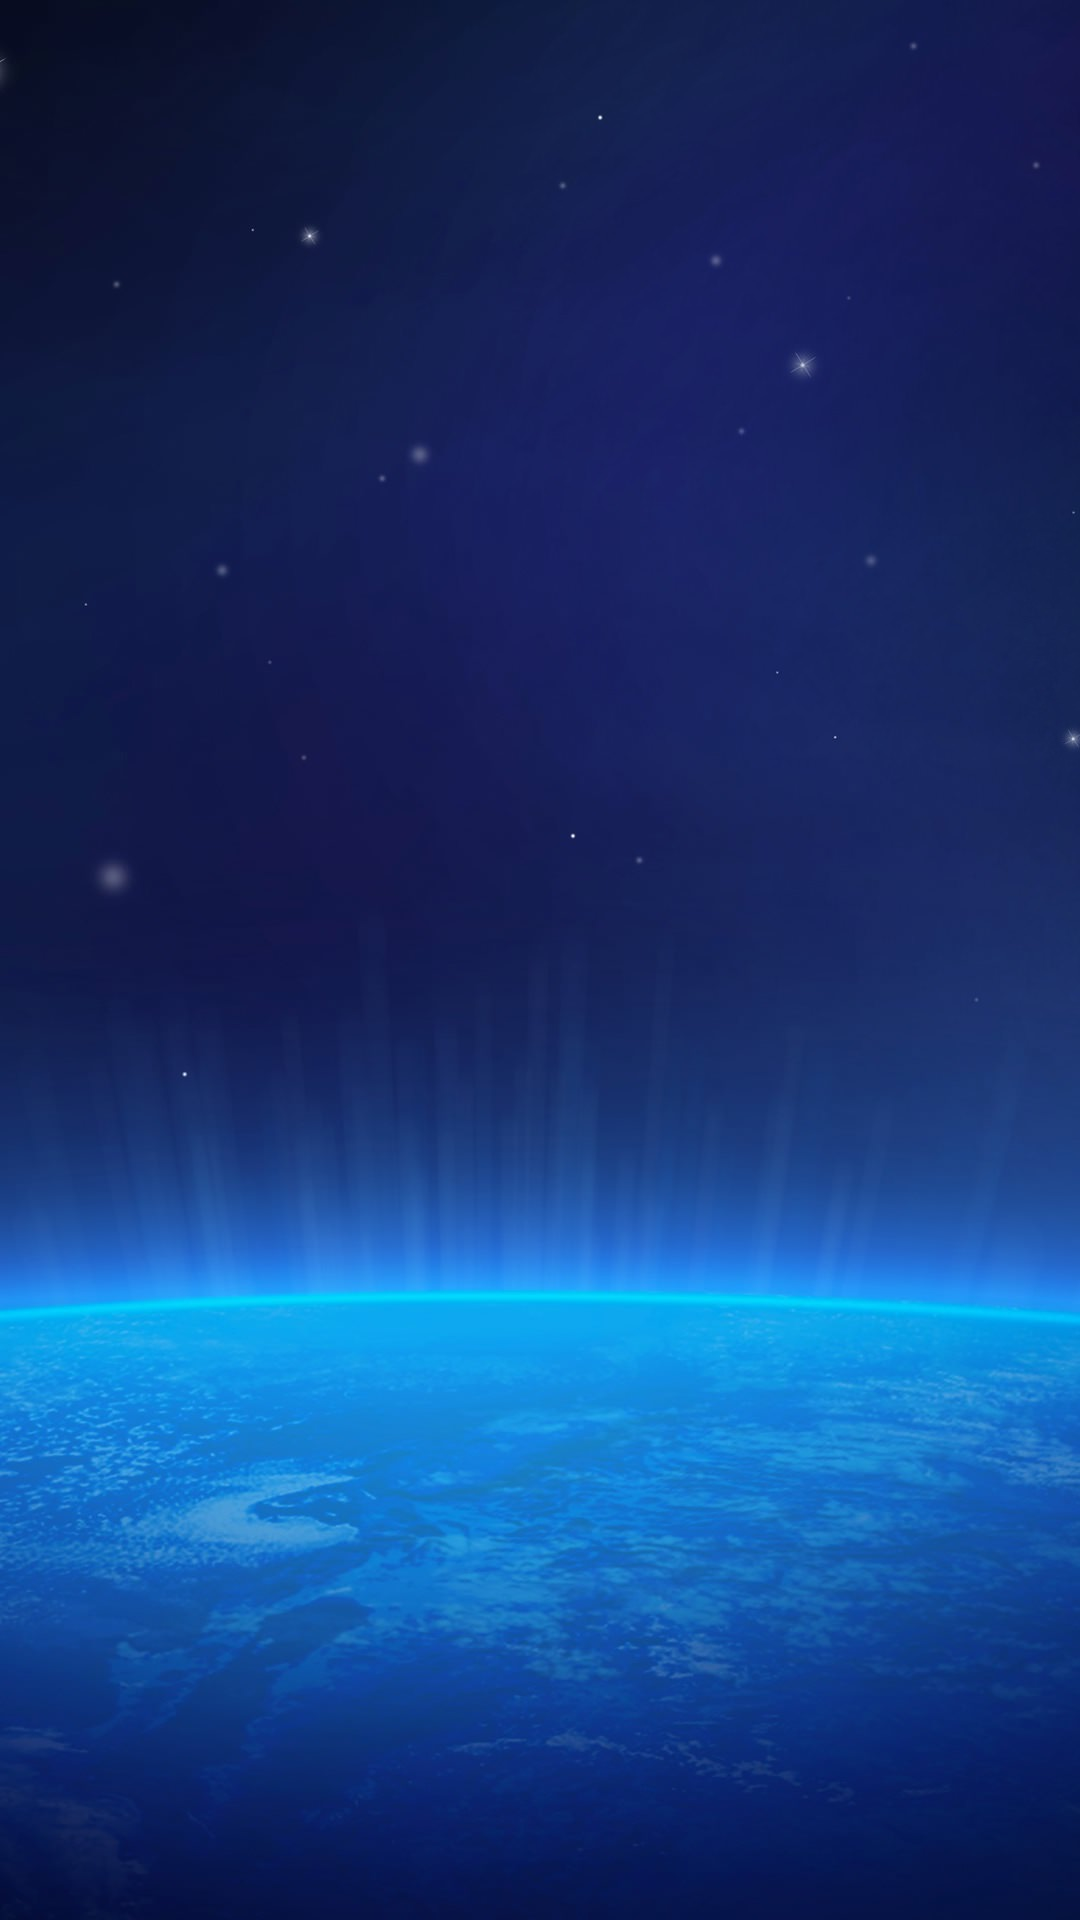 Earth and Space blue | wallpaper.sc SmartPhone